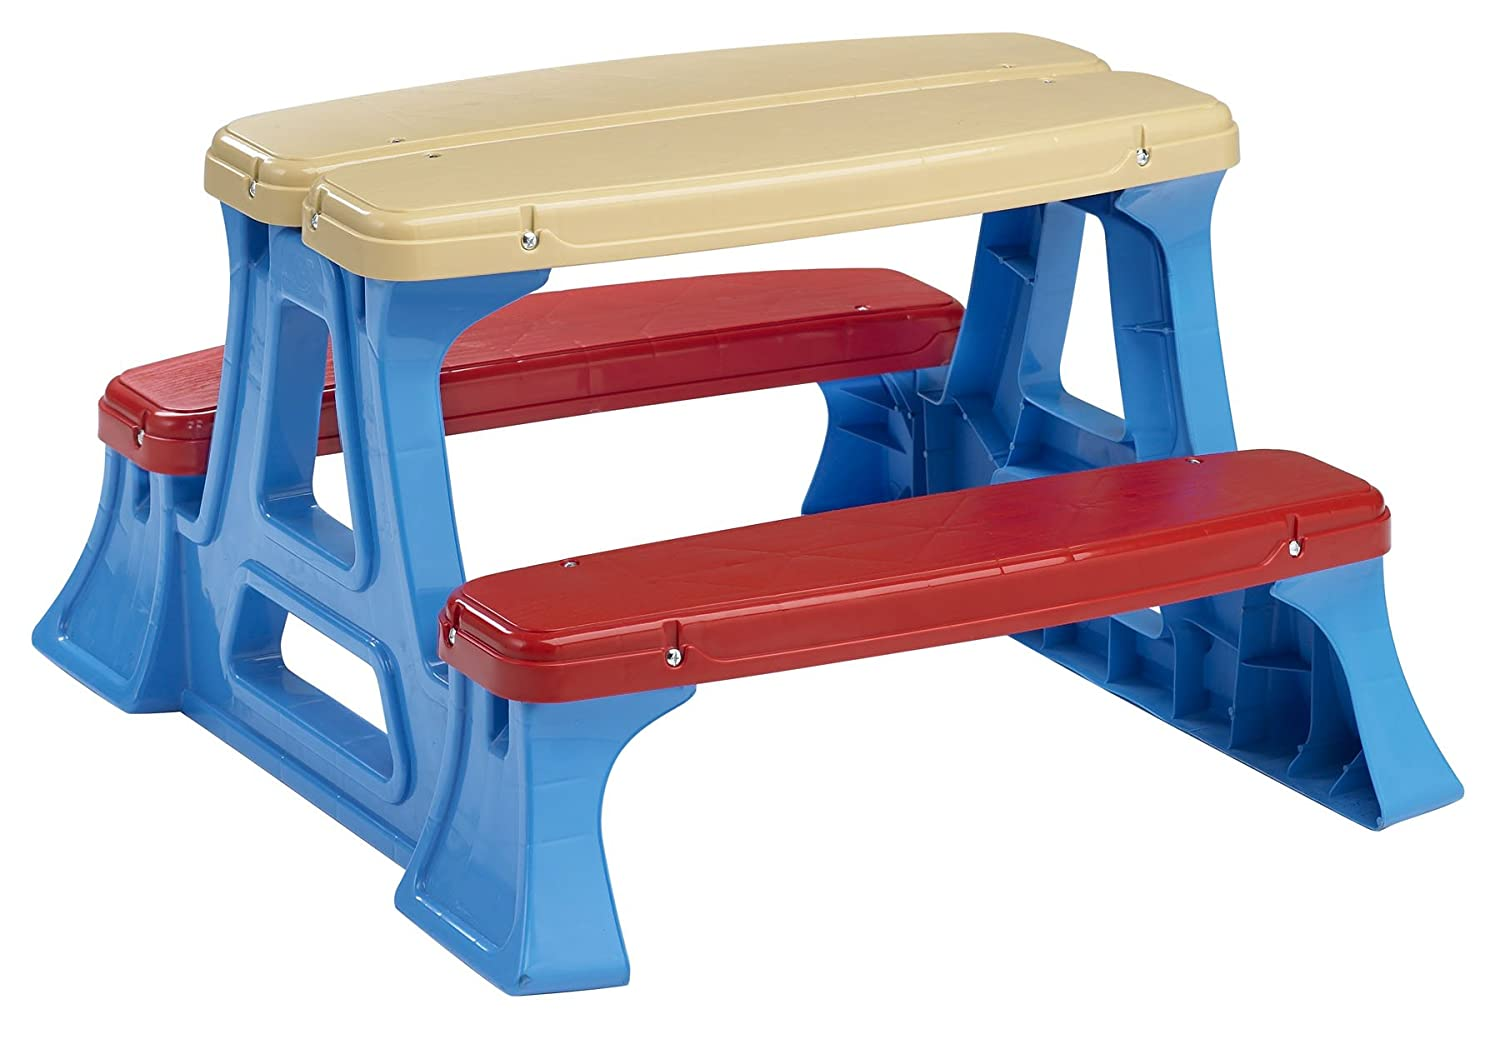 Picnic Tables For Kids